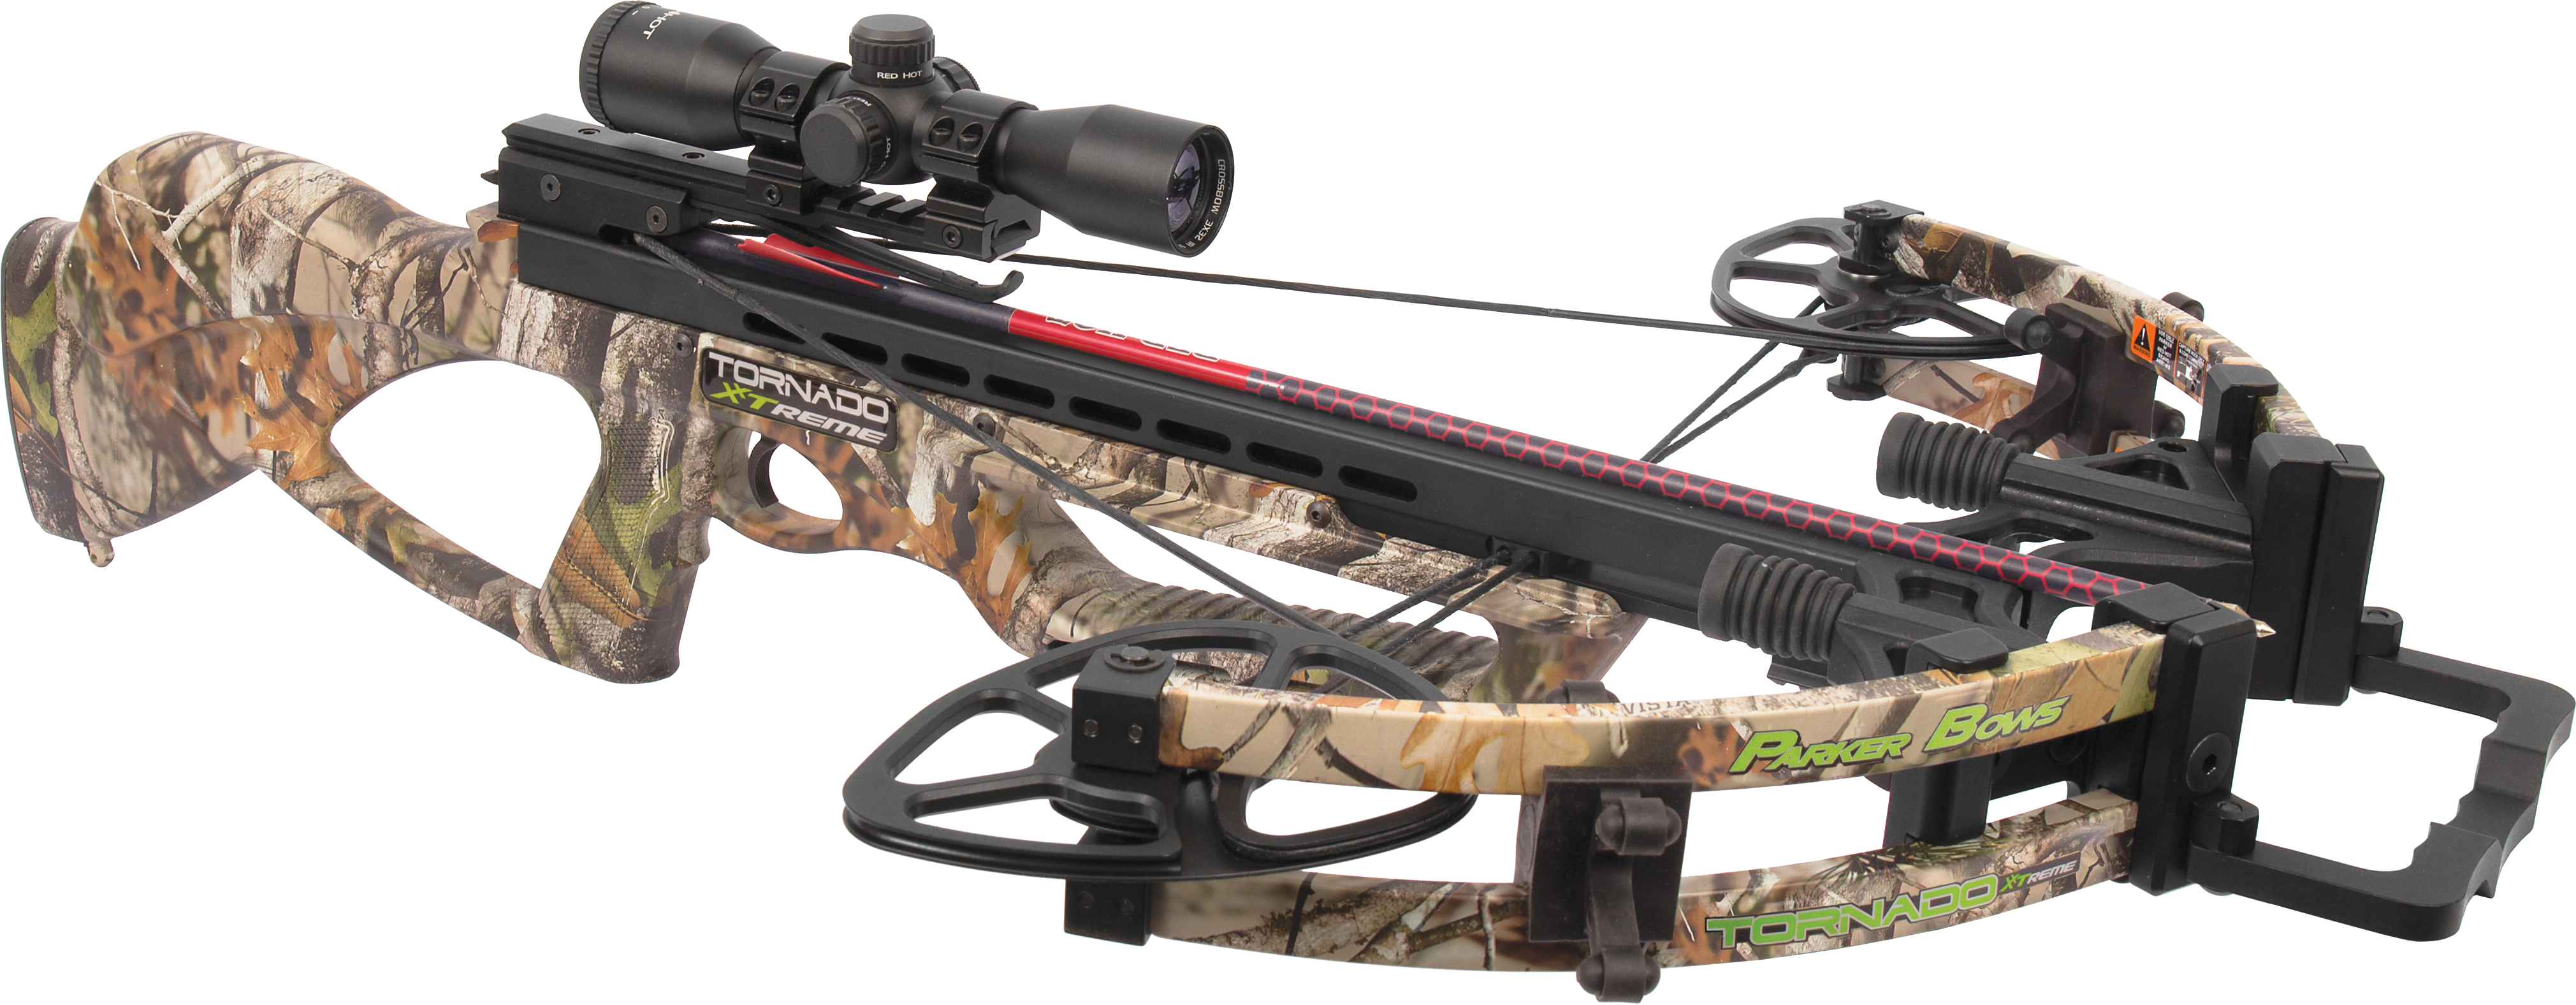 ATA and SHOT show: The best of 2017 - Outdoornews